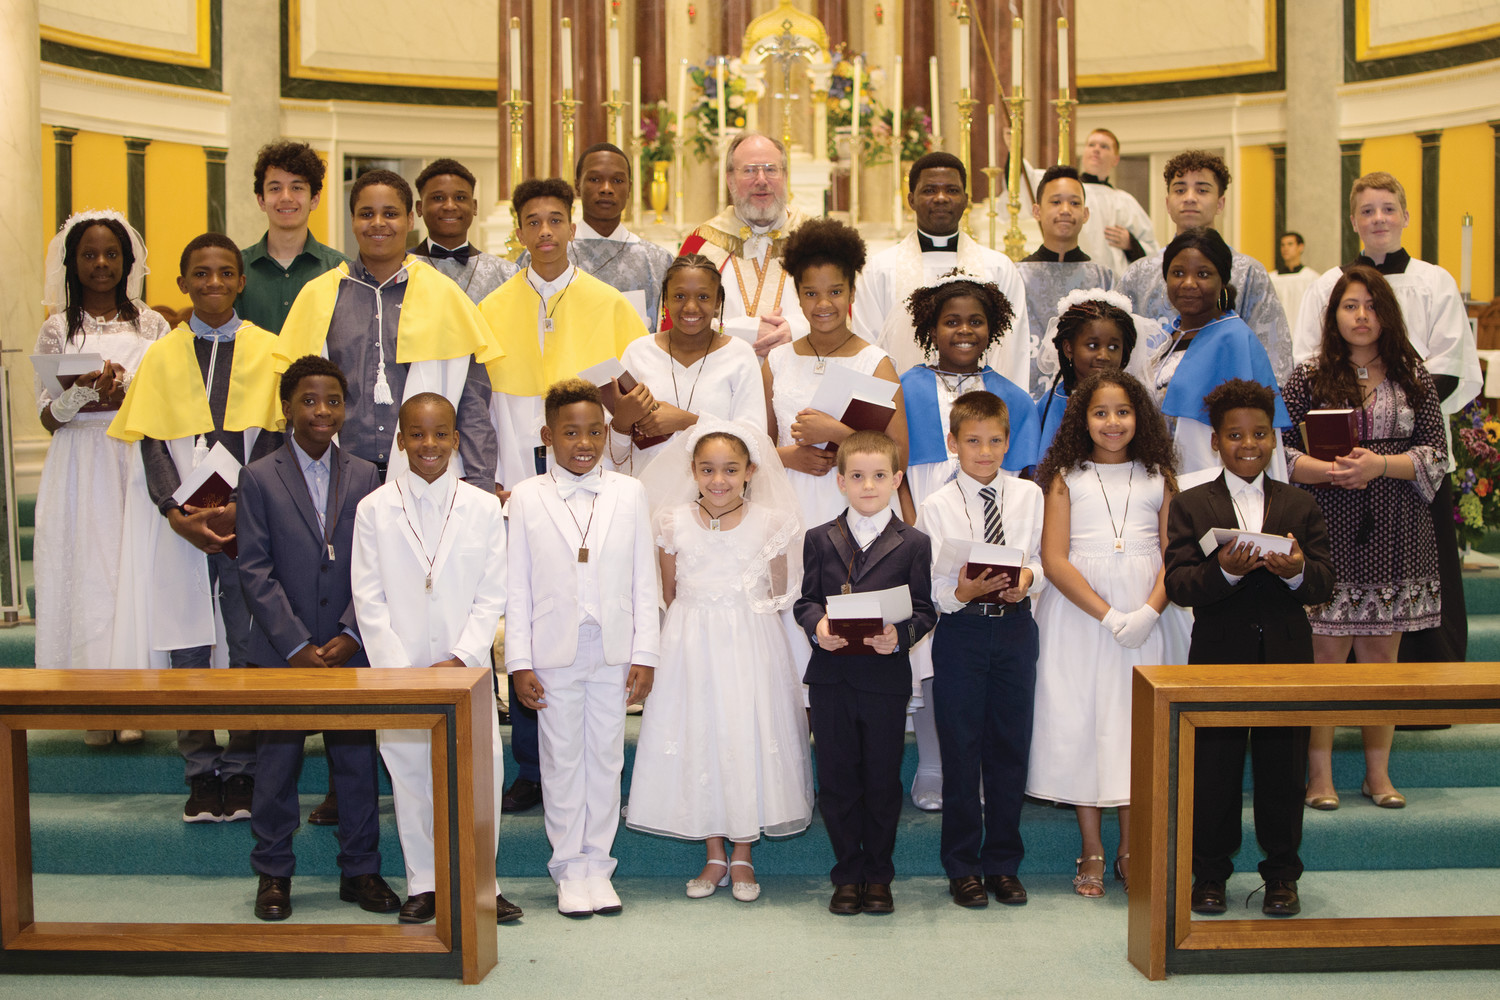 On Sunday, May 27, fifteen children and teens from Holy Name of Jesus Church in Providence received their First Holy Communion.